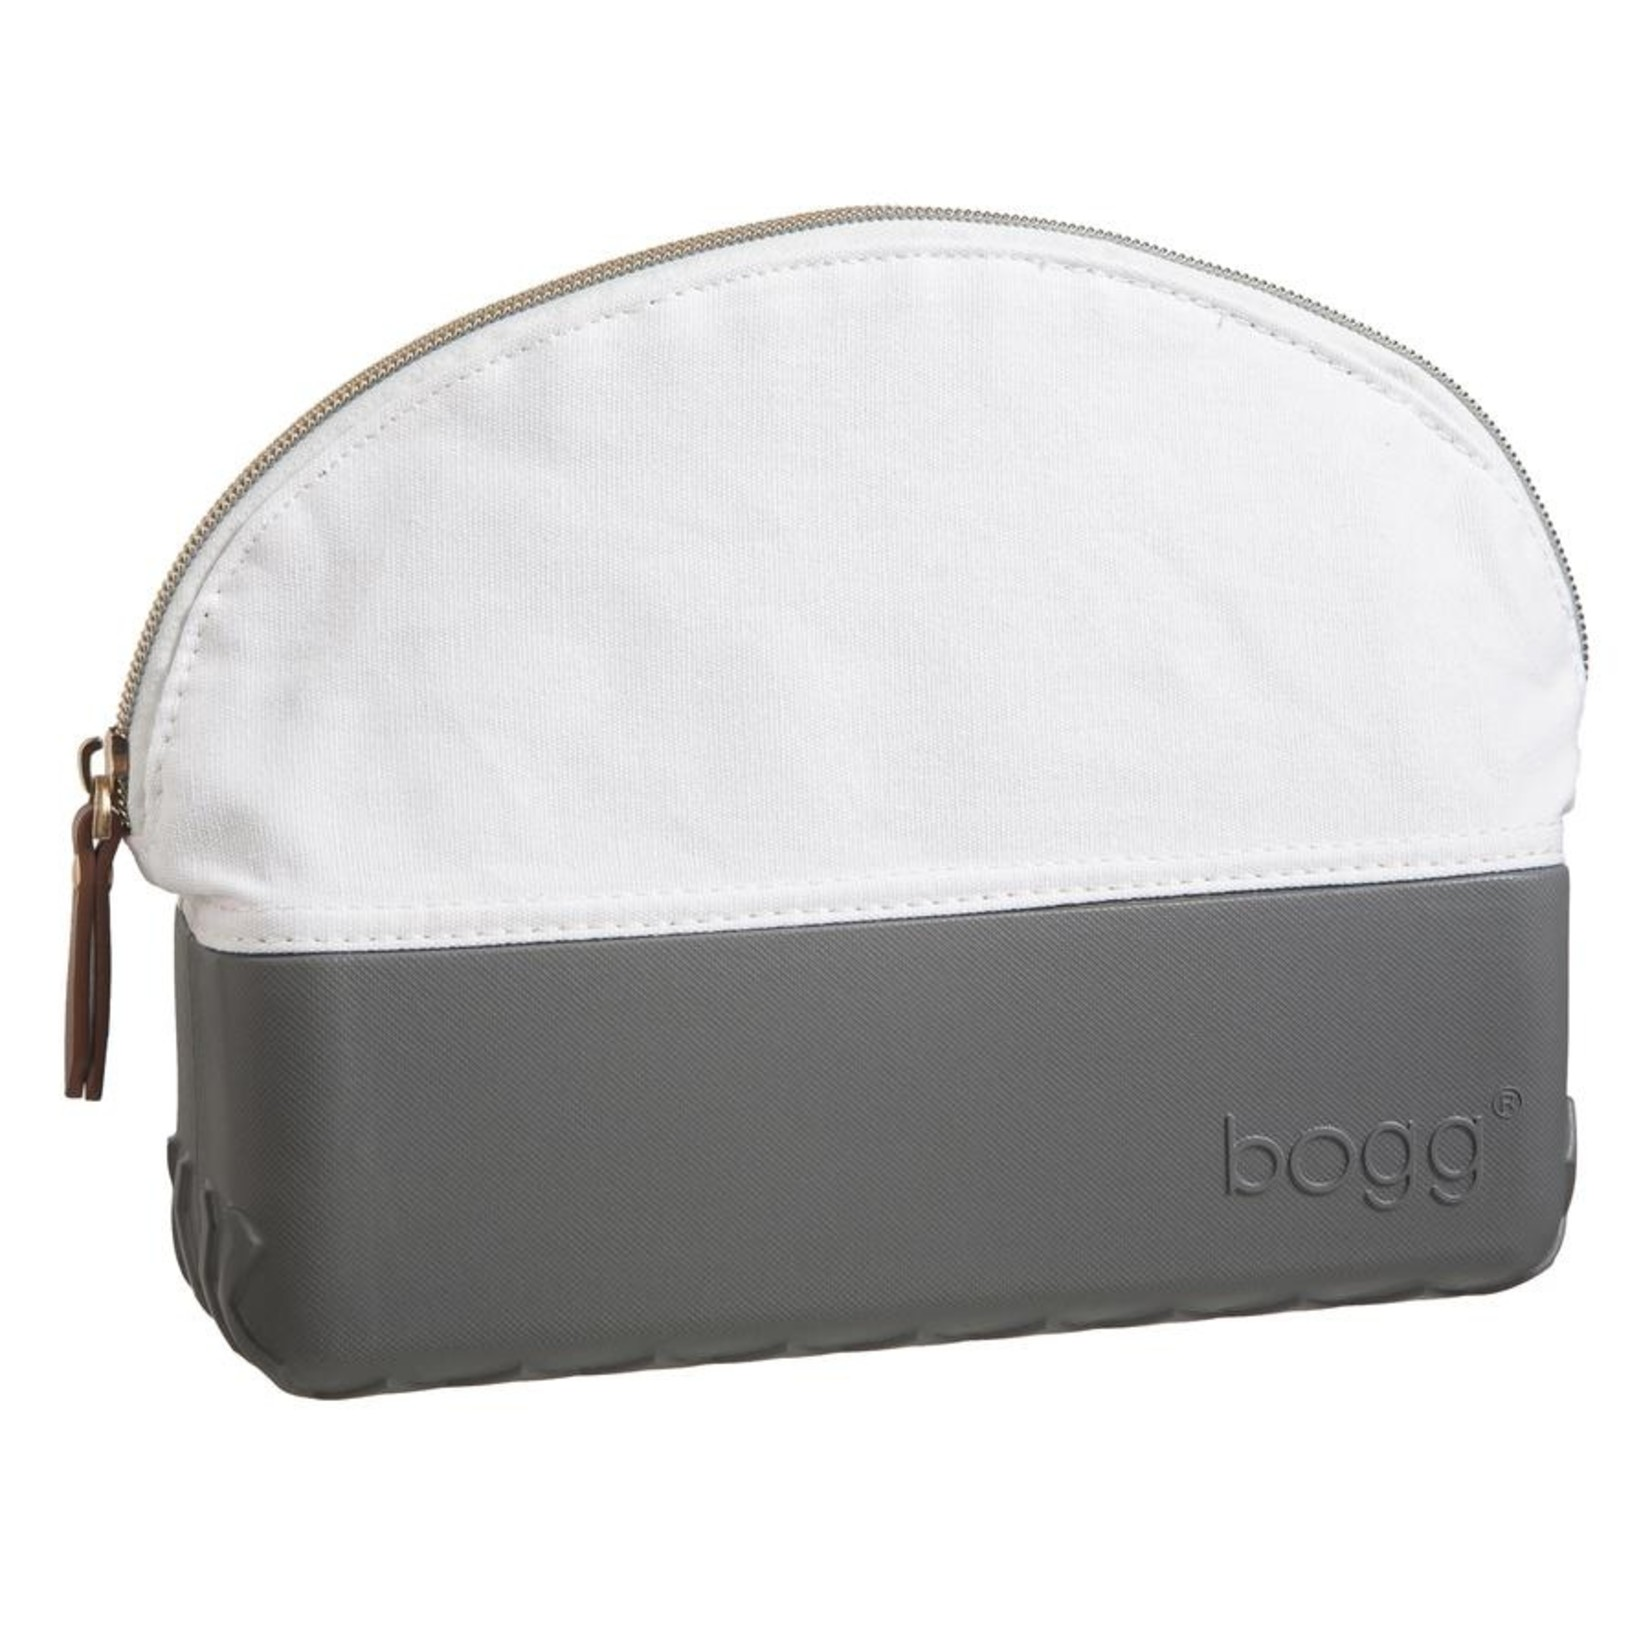 Bogg Bags FOGG BEAUTY AND THE BOGG